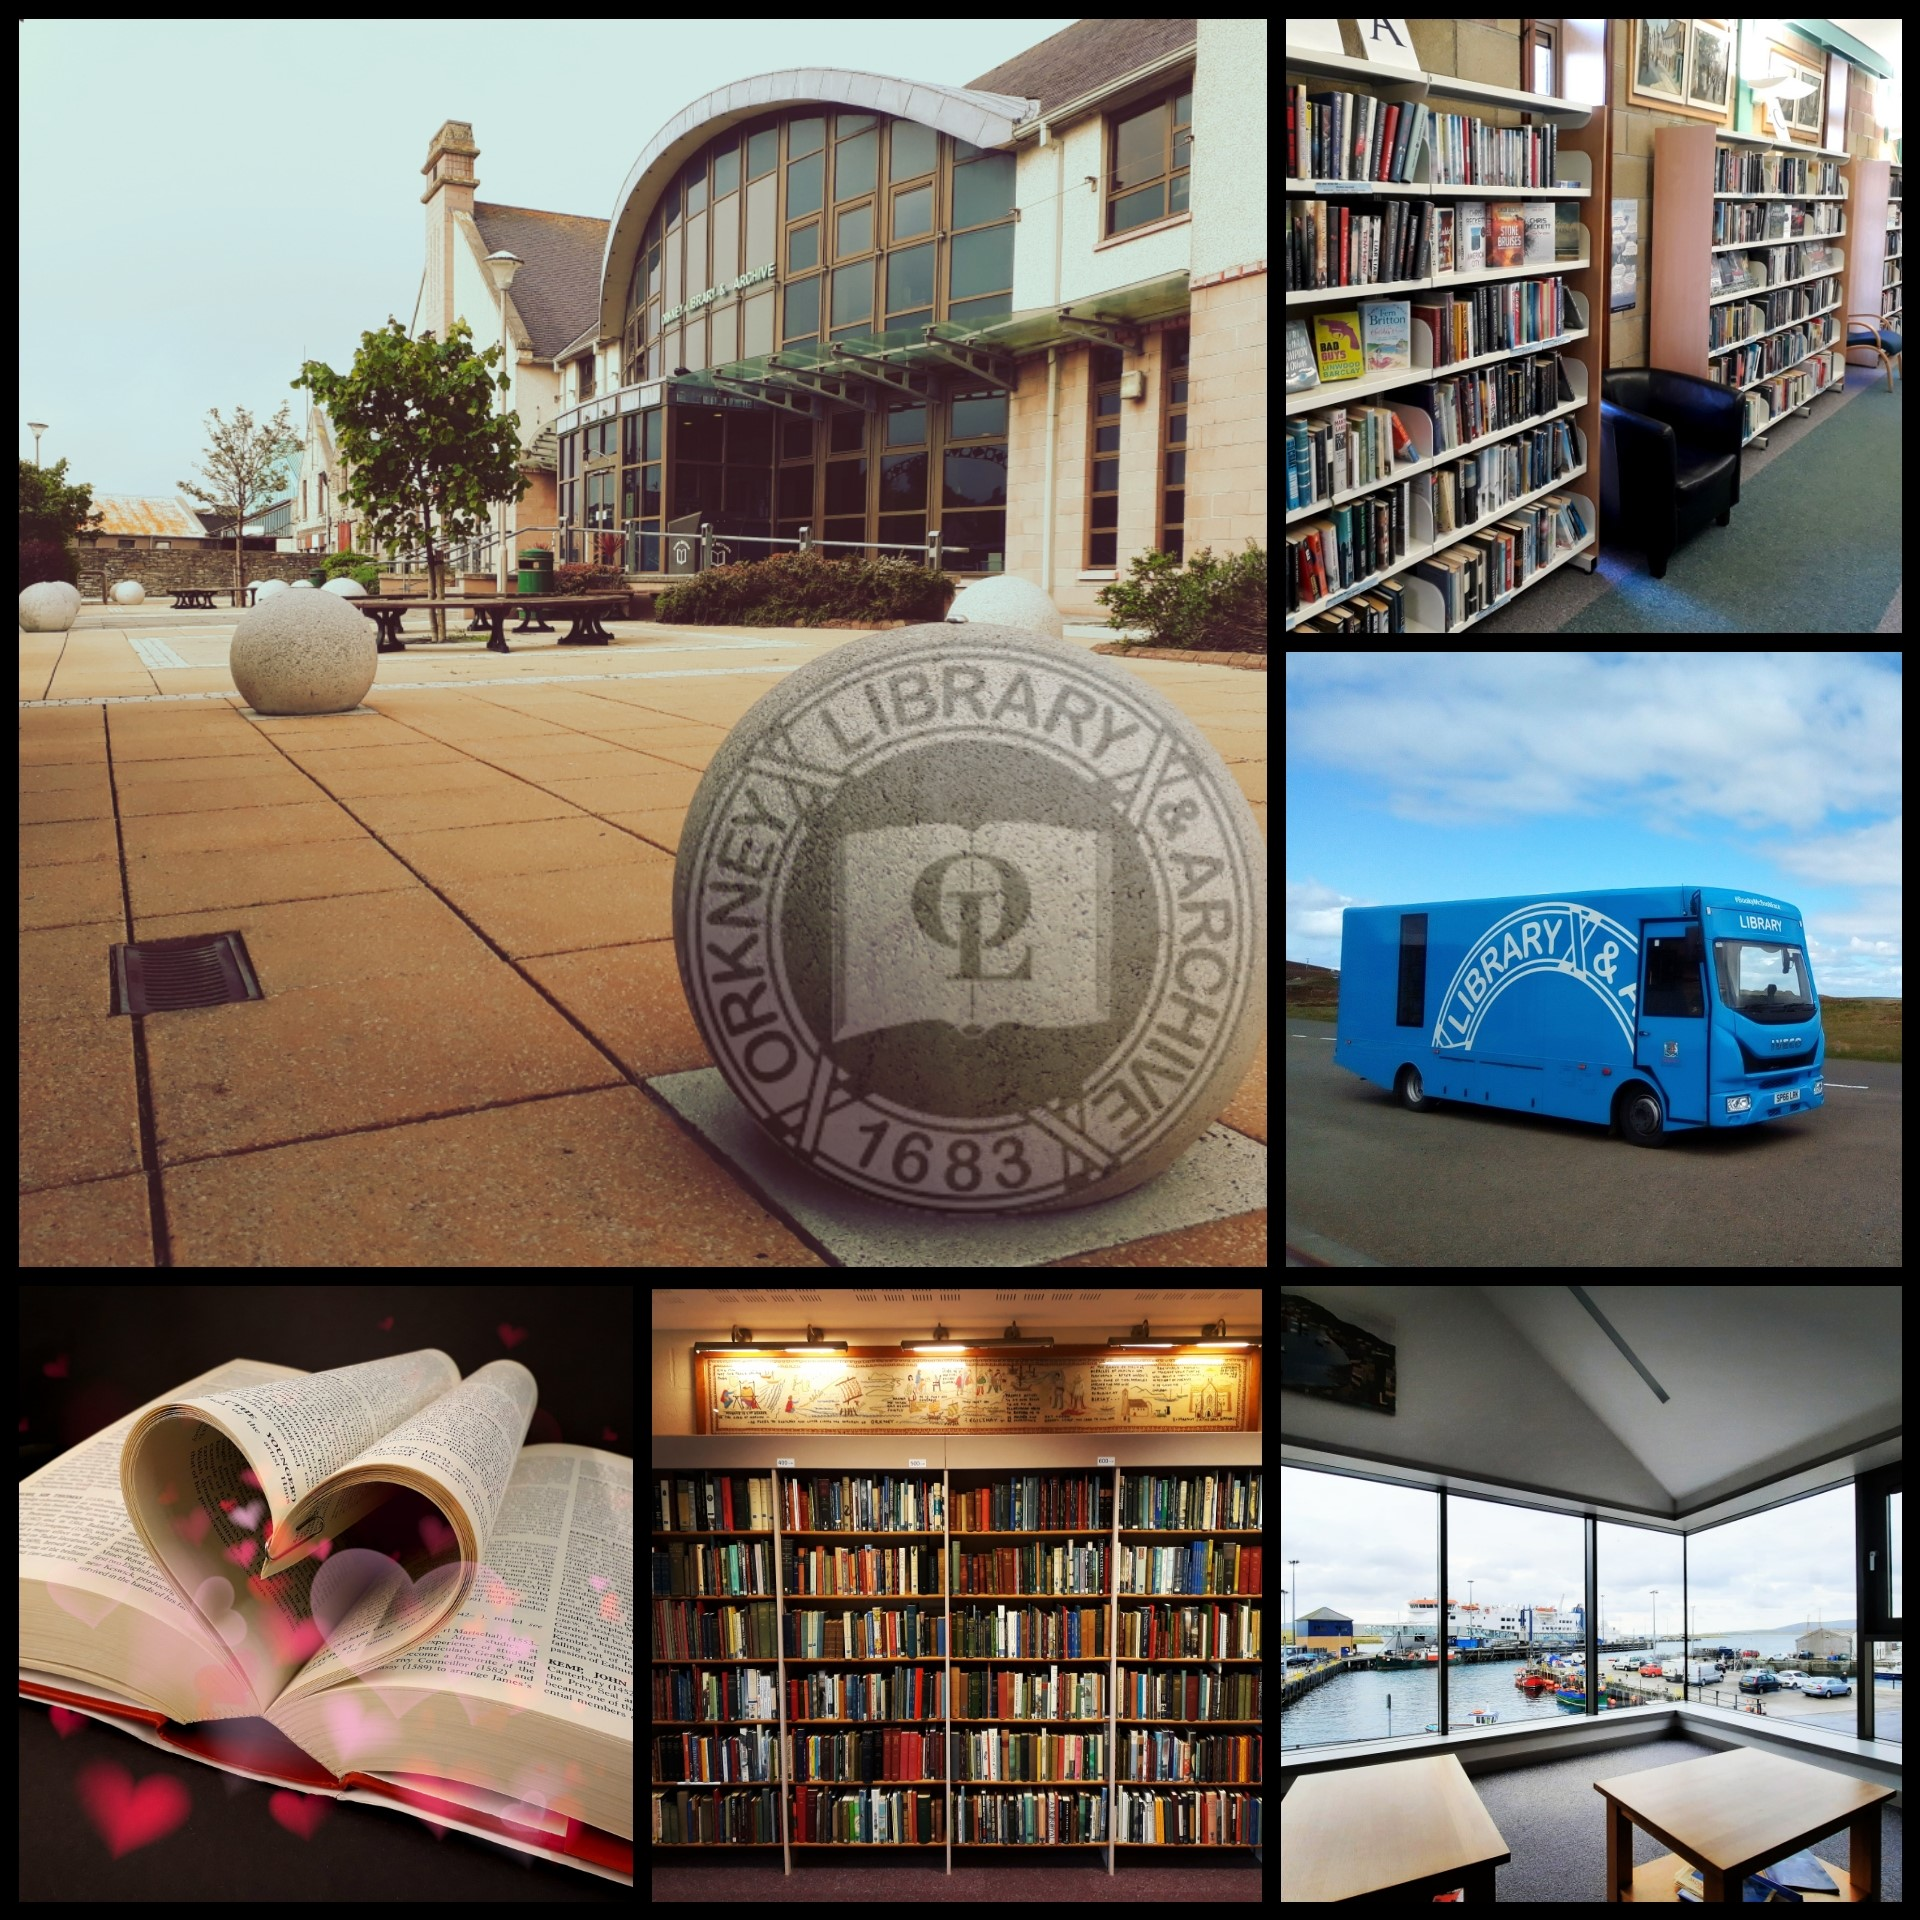 a composite image combining pictures of Orkney library, its bookshelves, its mobile library and a book with pages shaped like a heart.